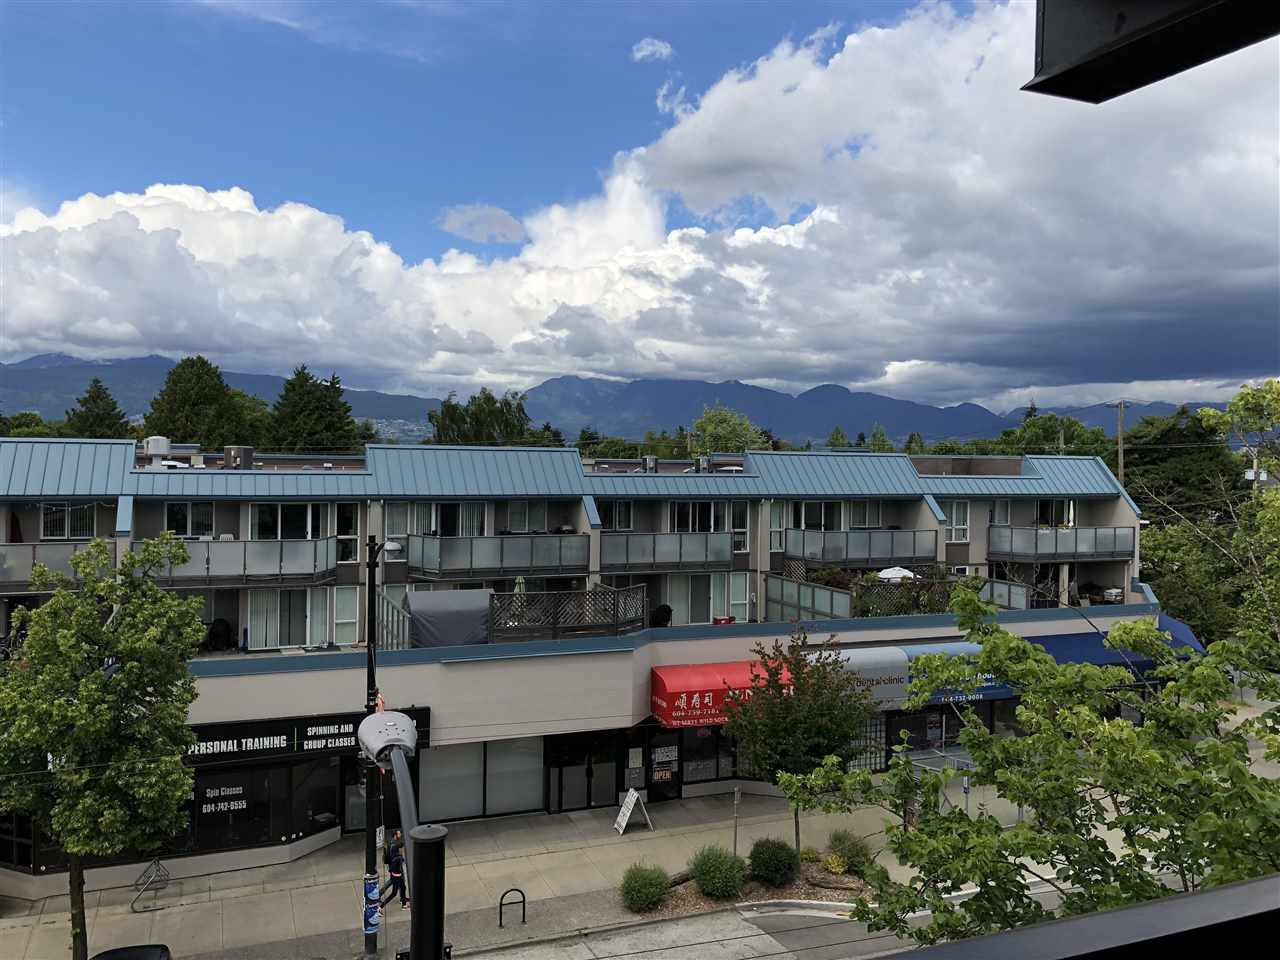 Photo 7: Photos: 404 2525 BLENHEIM Street in Vancouver: Kitsilano Condo for sale (Vancouver West)  : MLS®# R2278188